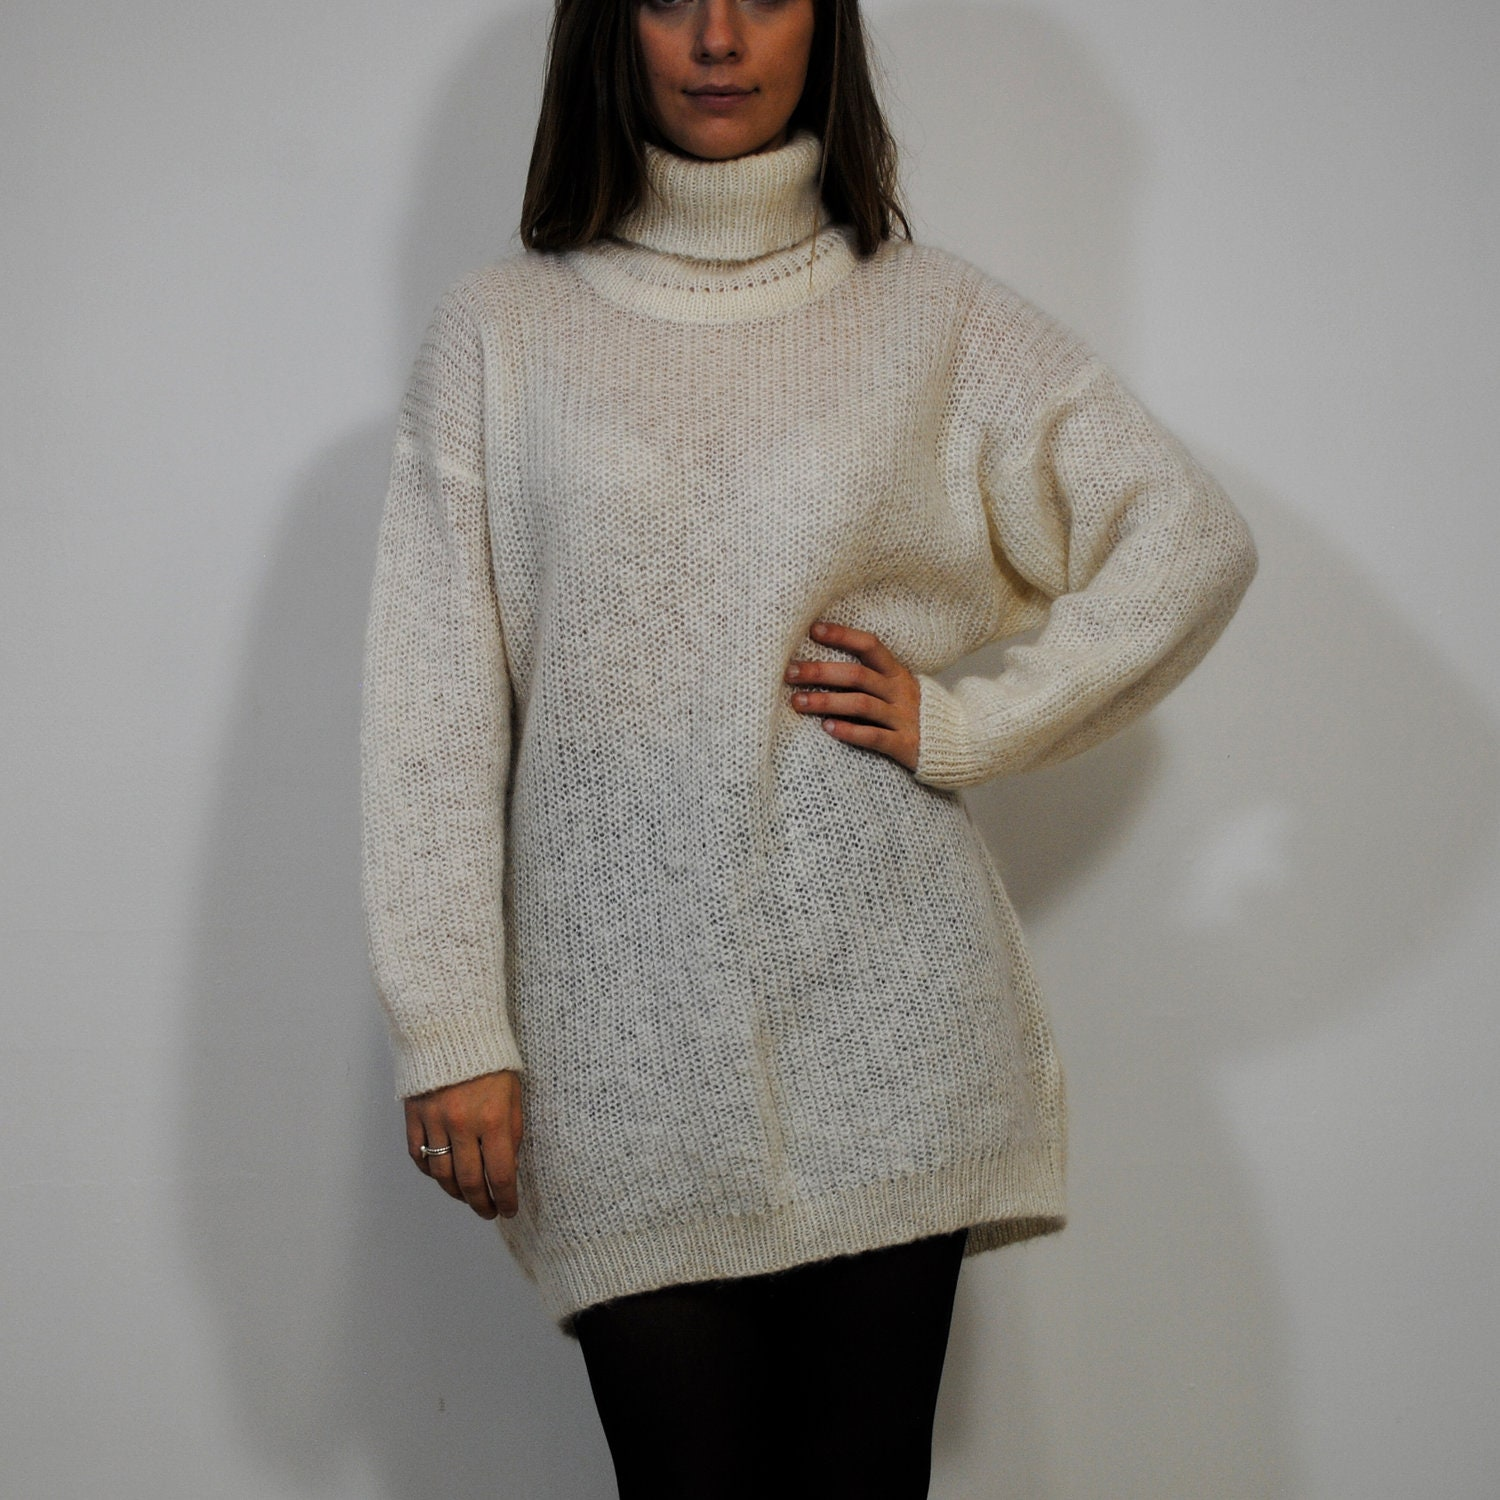 Searching for latest Sweaters and Cardigans, Oversized Sweaters, Long Sweaters, Long Cardigans, Black Sweaters and all online? shopnew-5uel8qry.cf provides new arrival Sweaters and Cardigans with cheap price. Free shipping worldwide.